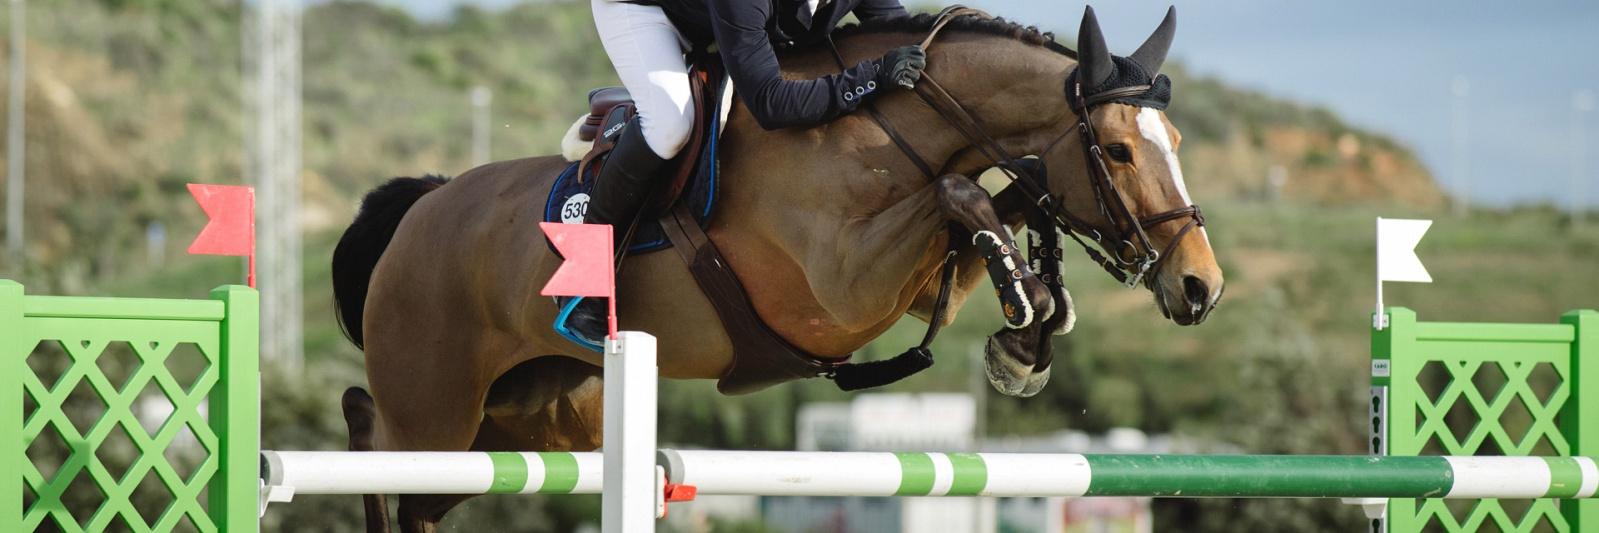 Mediterranean Equestrian Tour  | International Horse Competition